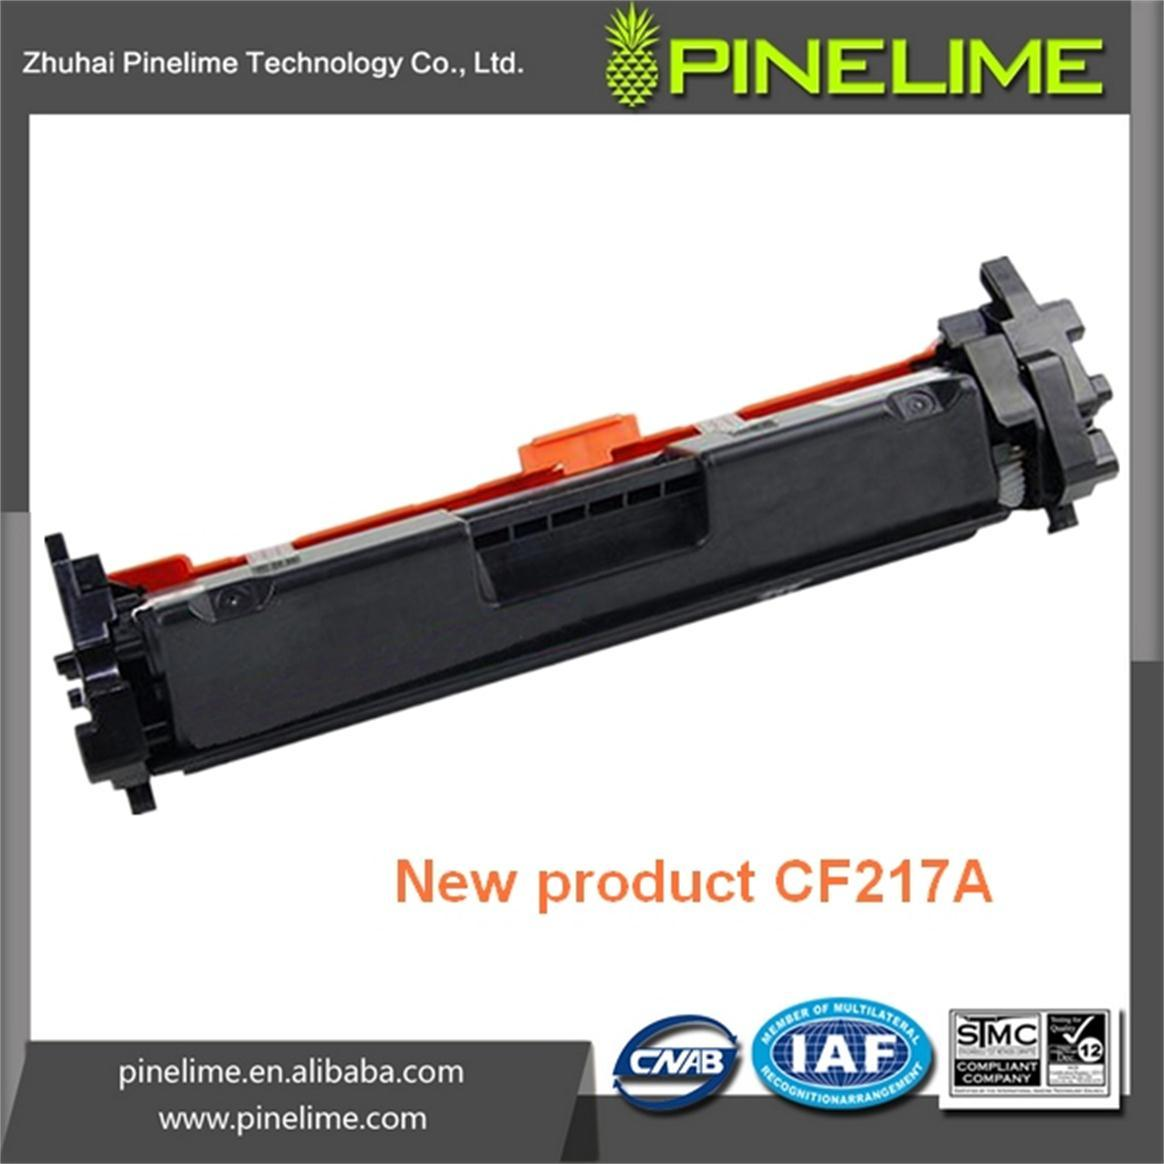 China Compatible Toner Cartridge Cf217a 17a For Hp Laserjet Pro Printer Mfp M130a M102a M102w M130fw M130nw M132a M132fn M132fp M132fw M132nw M132snw